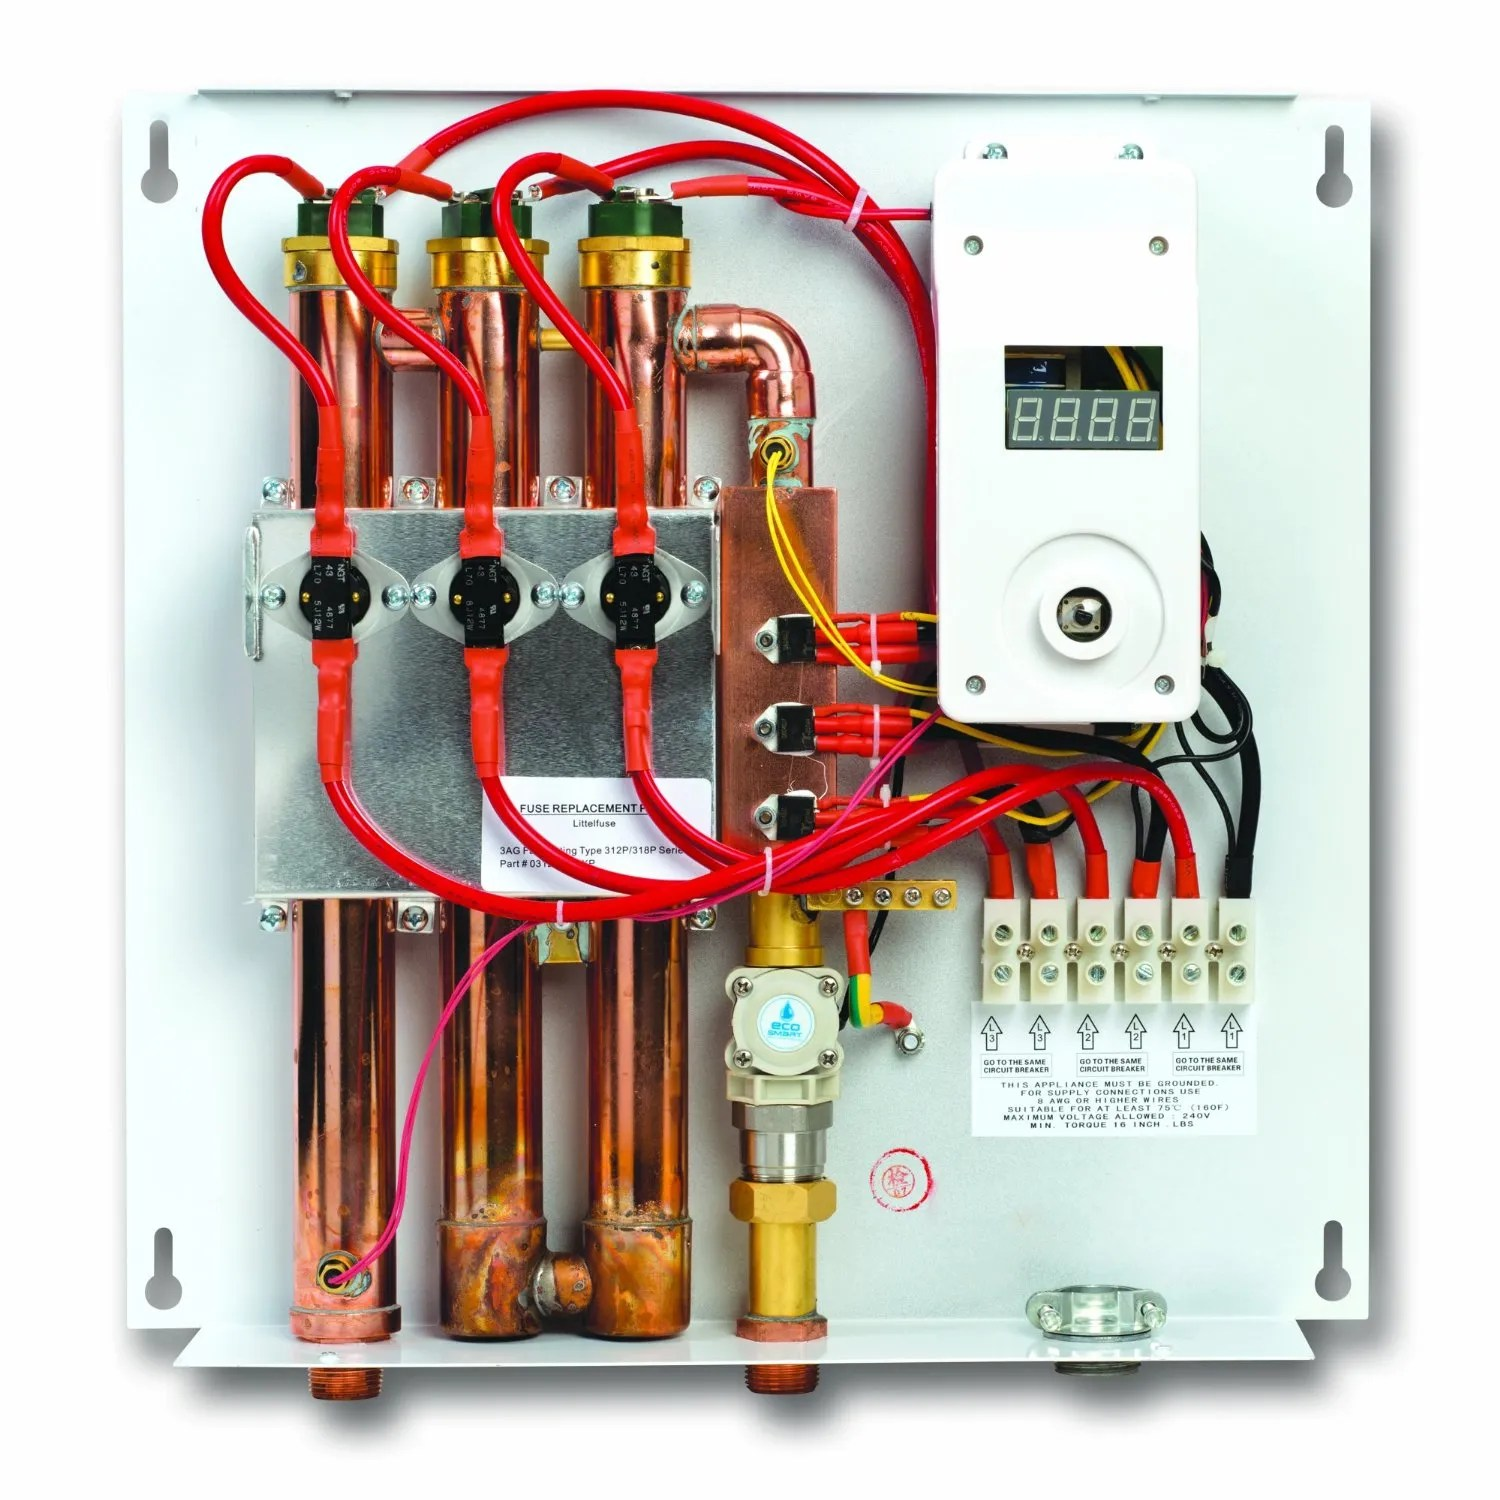 hight resolution of maintenance tips keeping a tankless water heater efficient greenmaintenance tips keeping a tankless water heater efficient